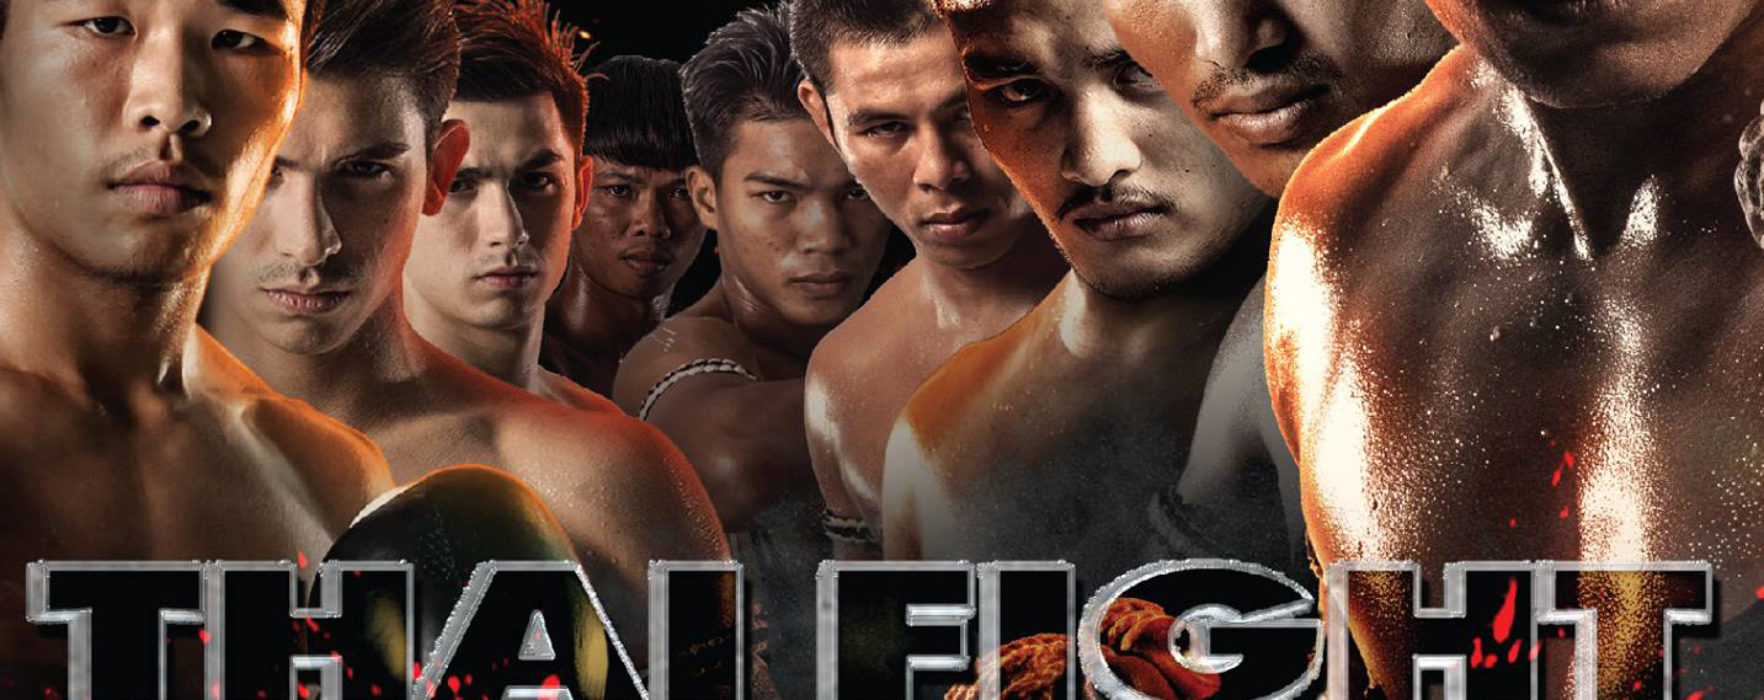 Risultati & Video: Thai Fight China – Sudsakorn perde, Youssef e Saenchai vincono per KO – 15/10/2016